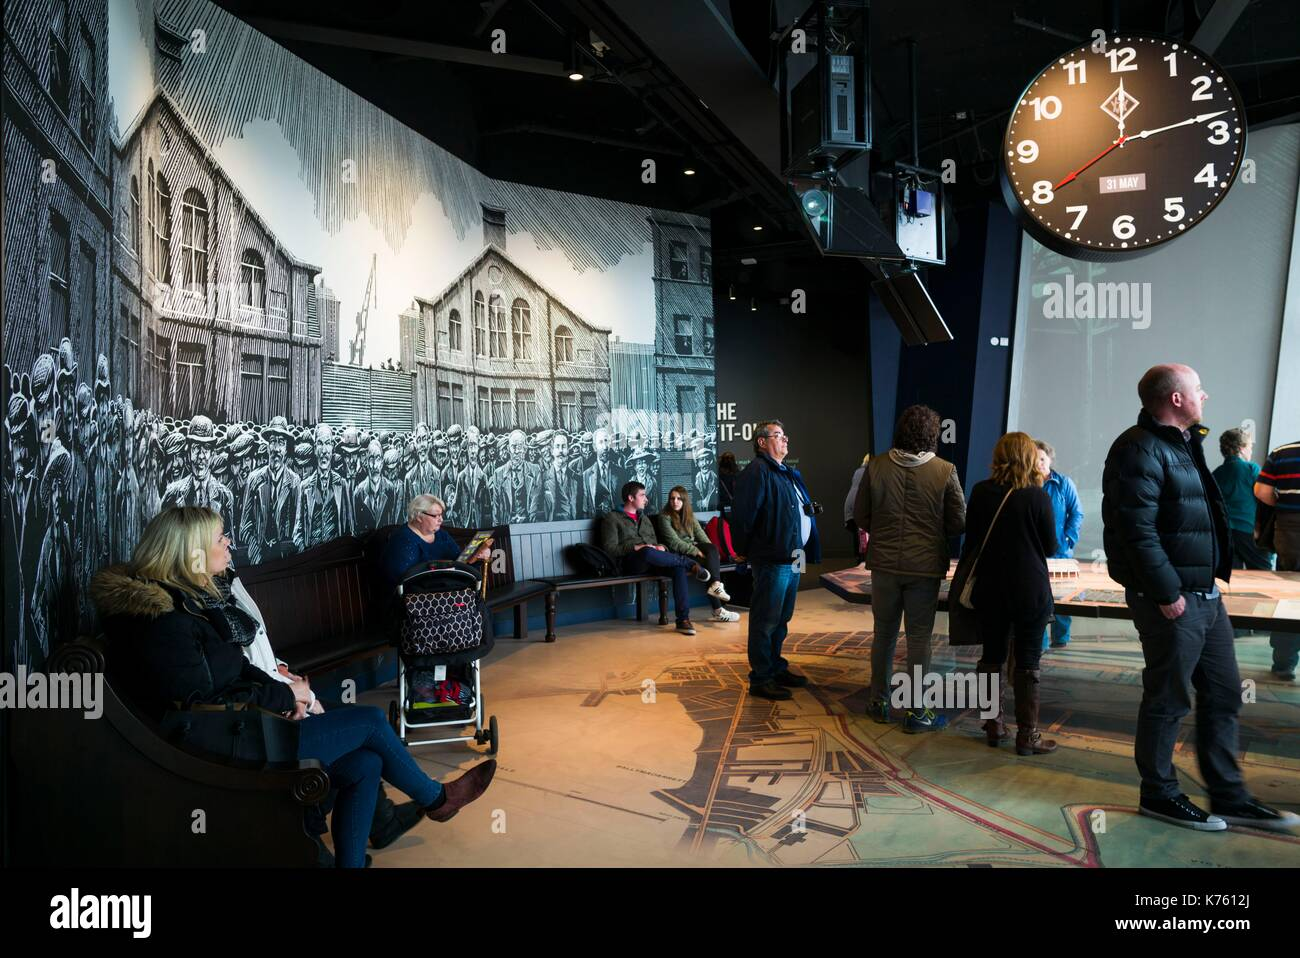 United Kingdom, Northern Ireland, Belfast, Belfast Docklands, Titanic Belfast Museum, interior - Stock Image